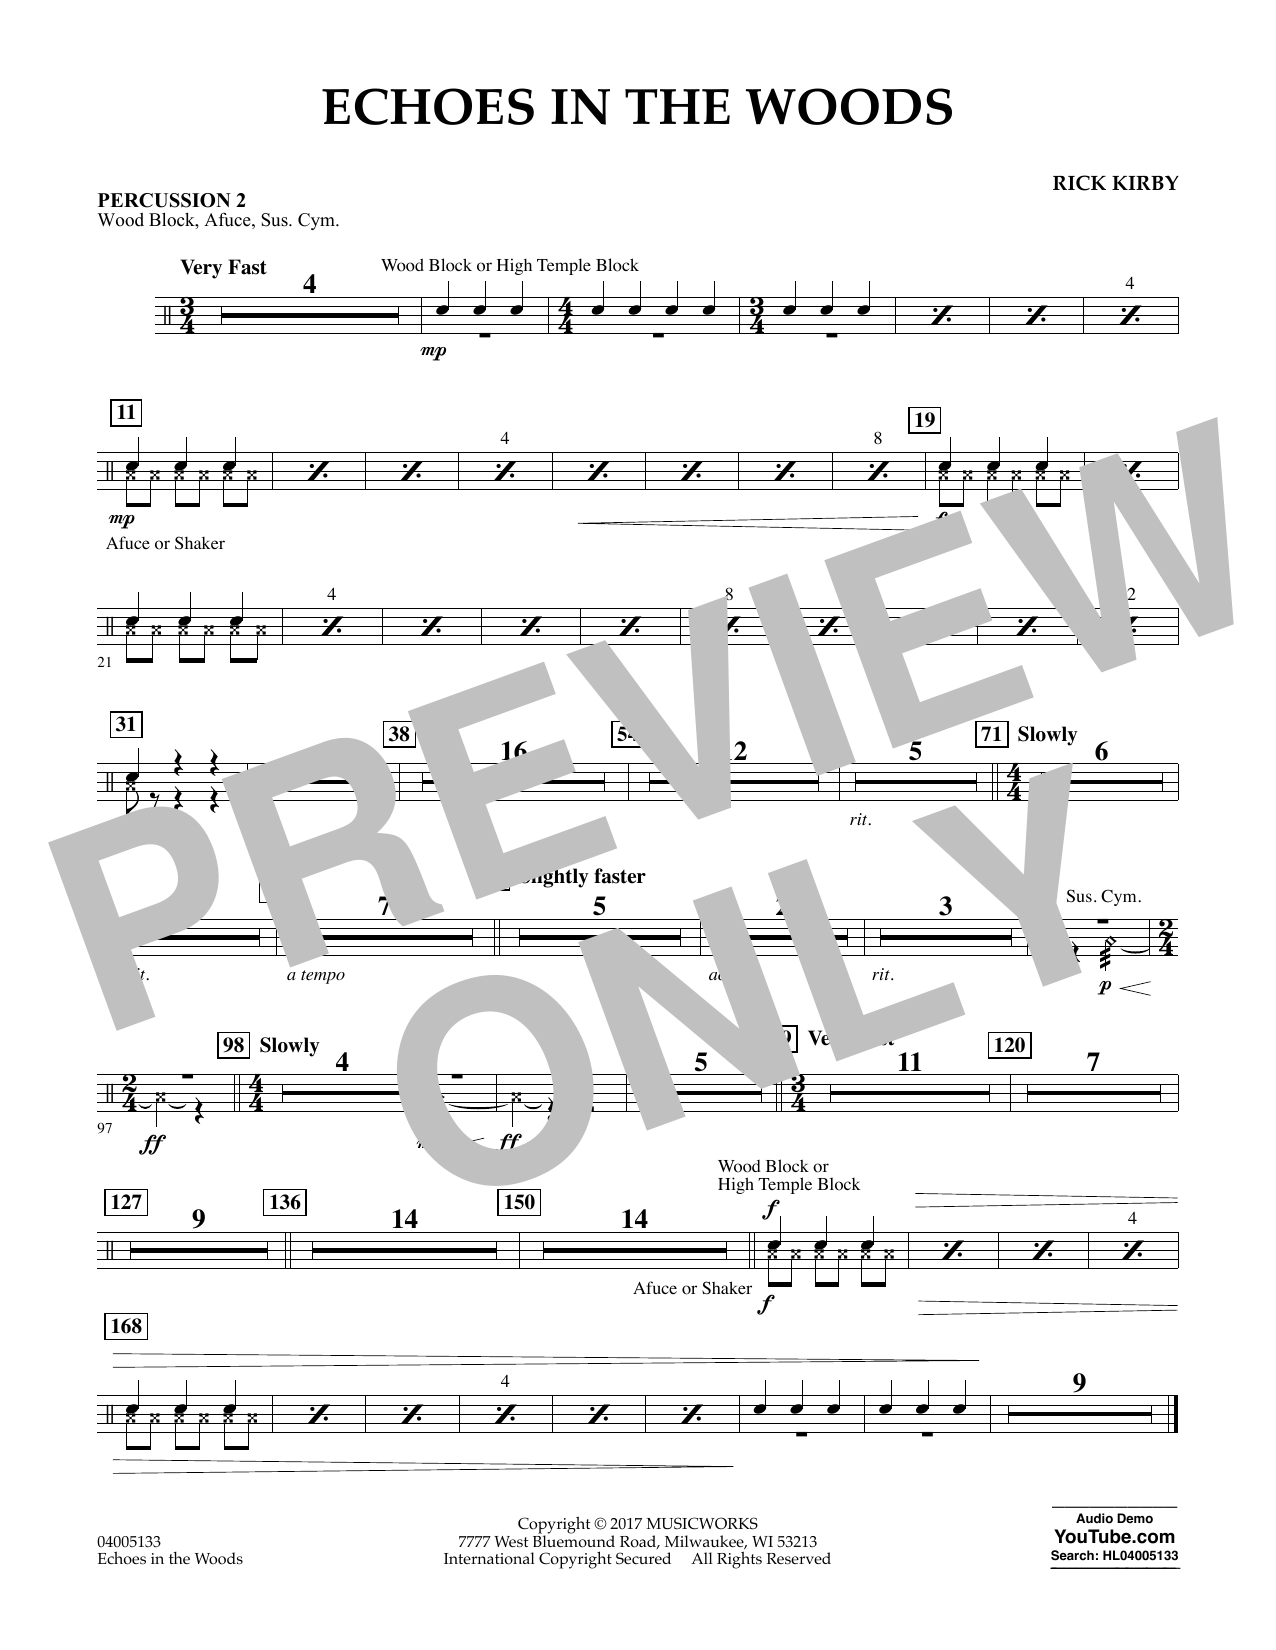 Echoes in the Woods - Percussion 2 Sheet Music